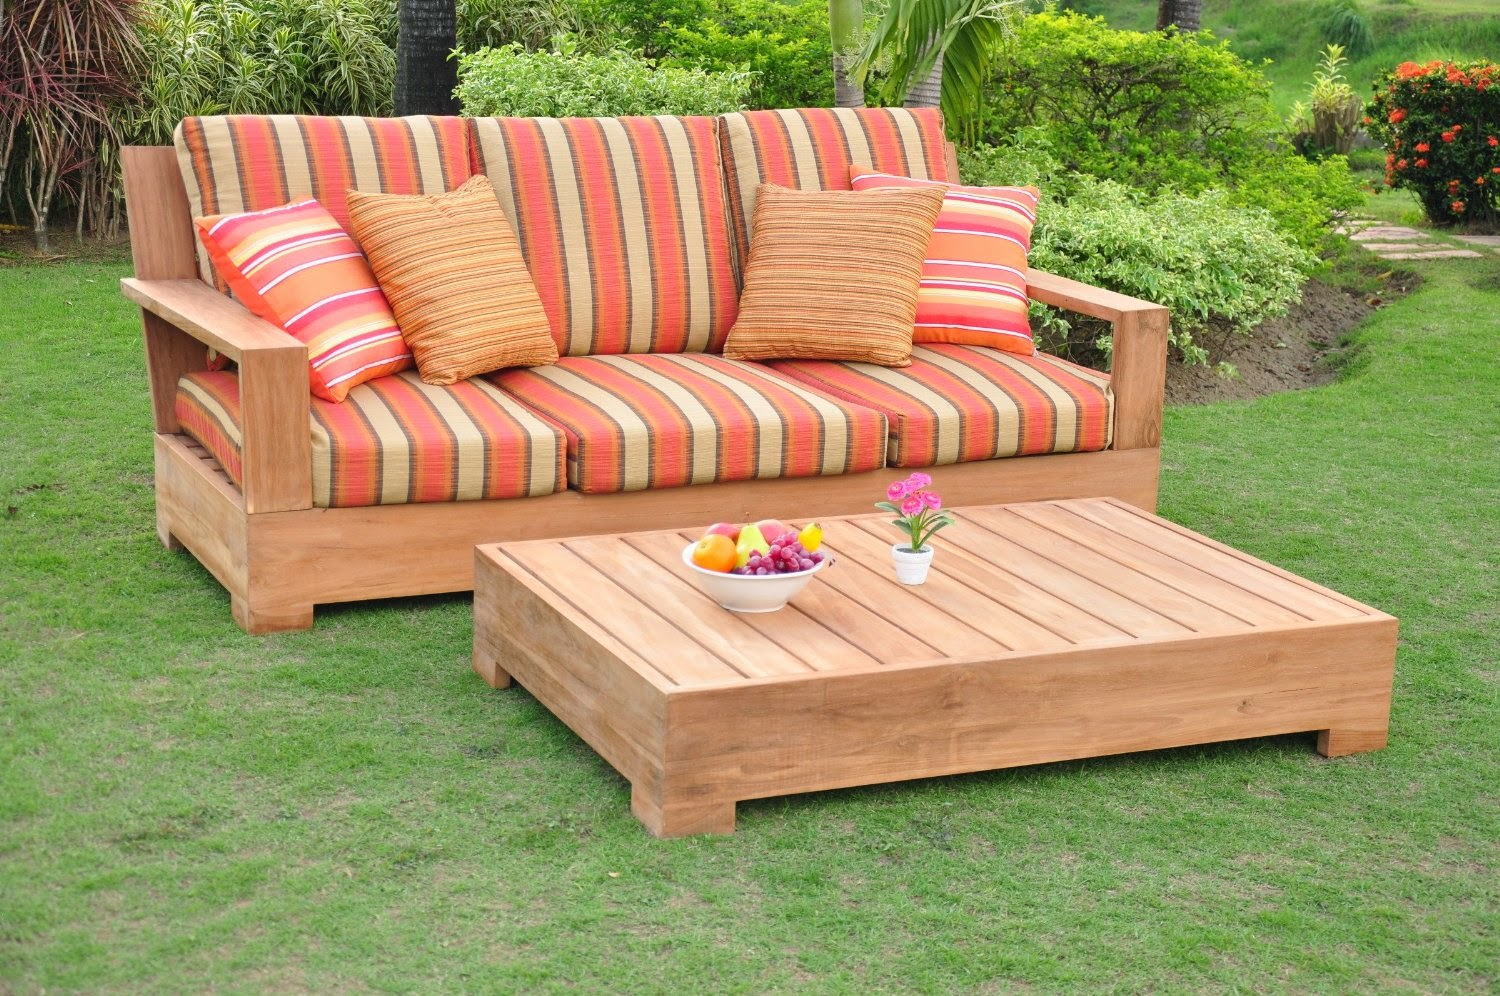 Wooden Sofa With Stripped Orange And Cream Sunbrella Cushions Plus Rectangle Wooden Table On Green Grass For Patio Decor Ideas